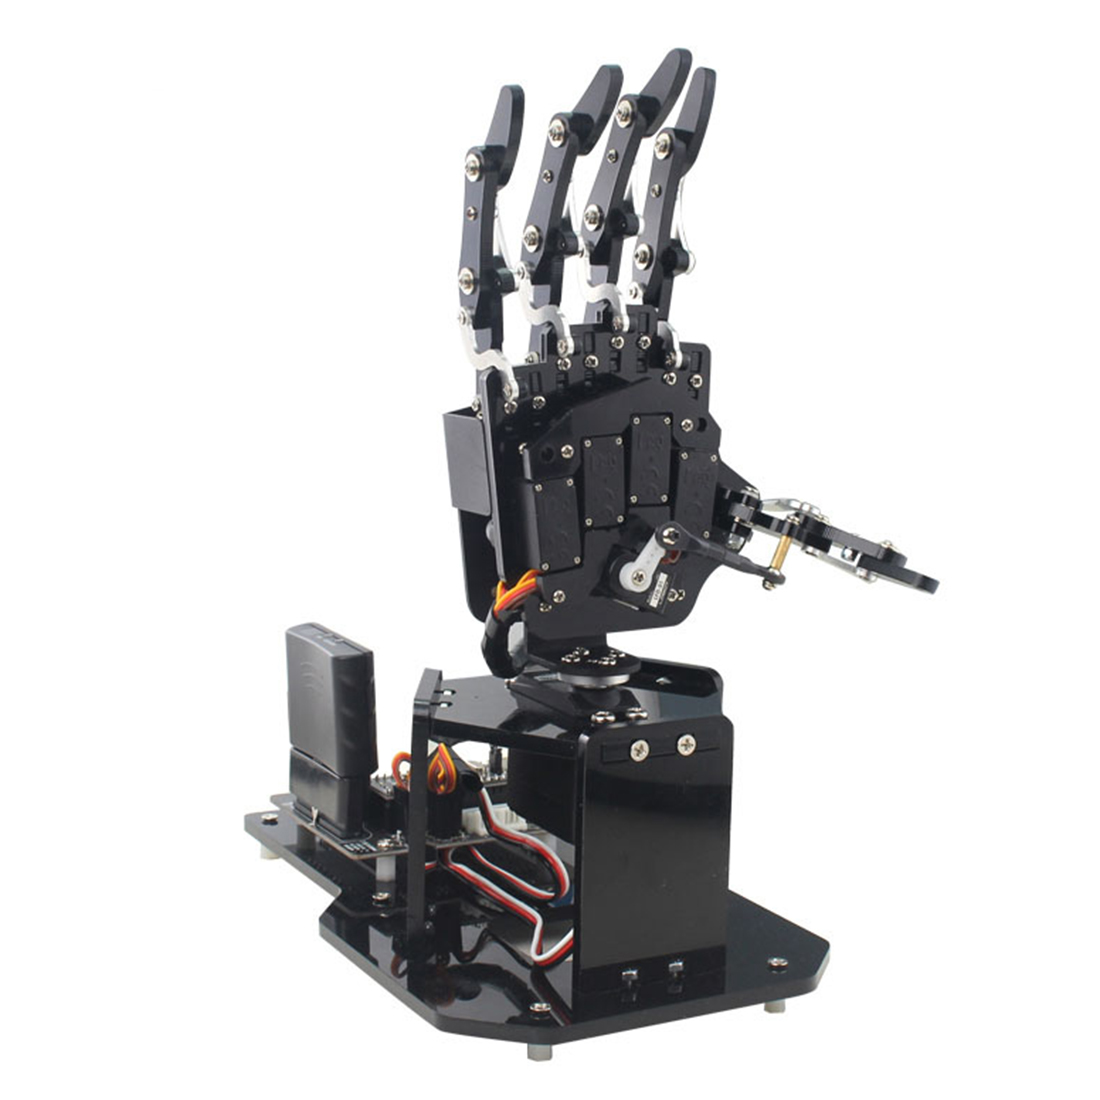 New Hot 1Pcs Open Source Robot Palm Bionic Mechanical Palm Sense Maker For Arduino